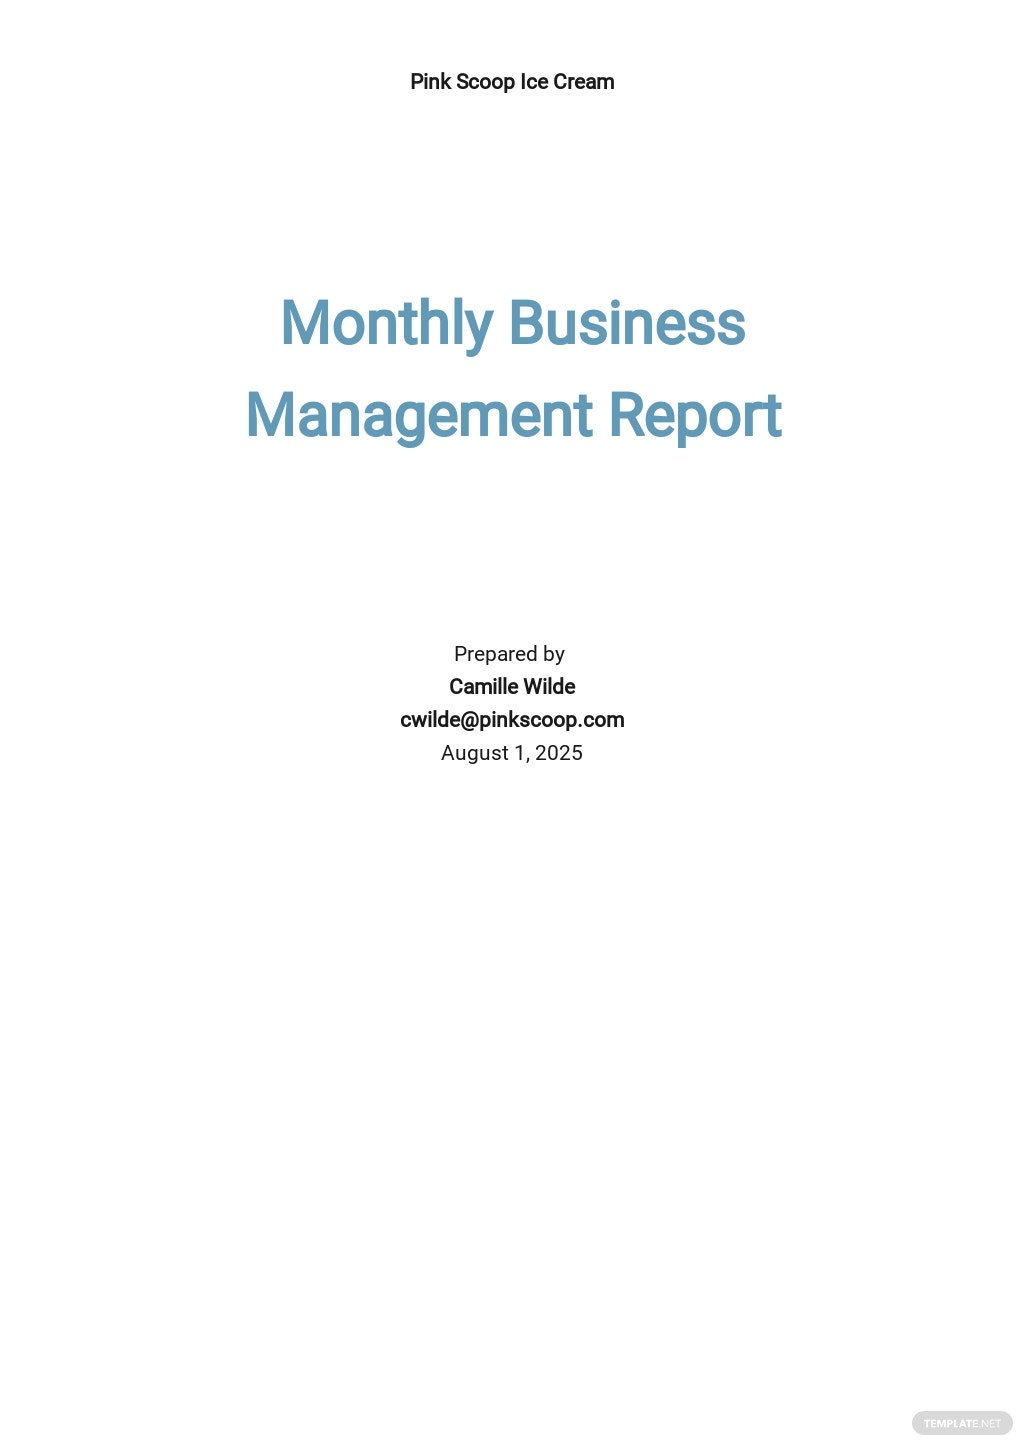 Monthly Business Management Report Template